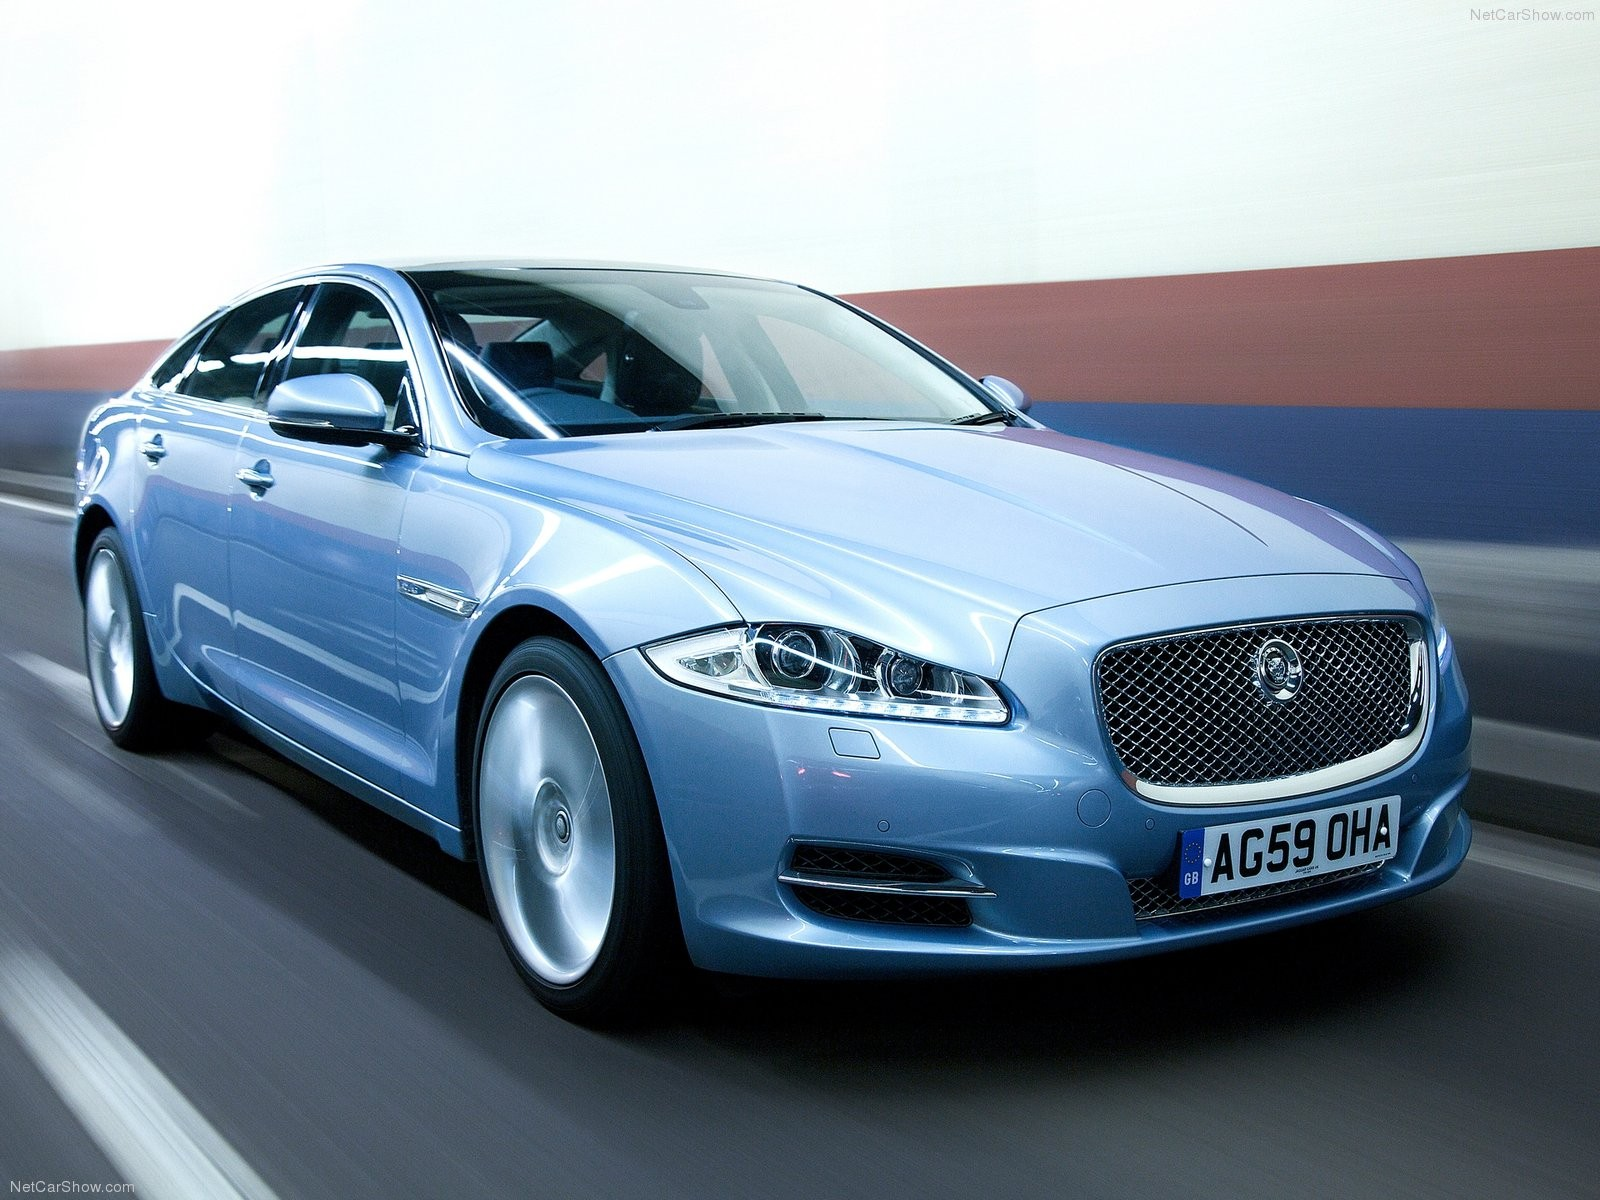 Jaguar cars blue - photo#17